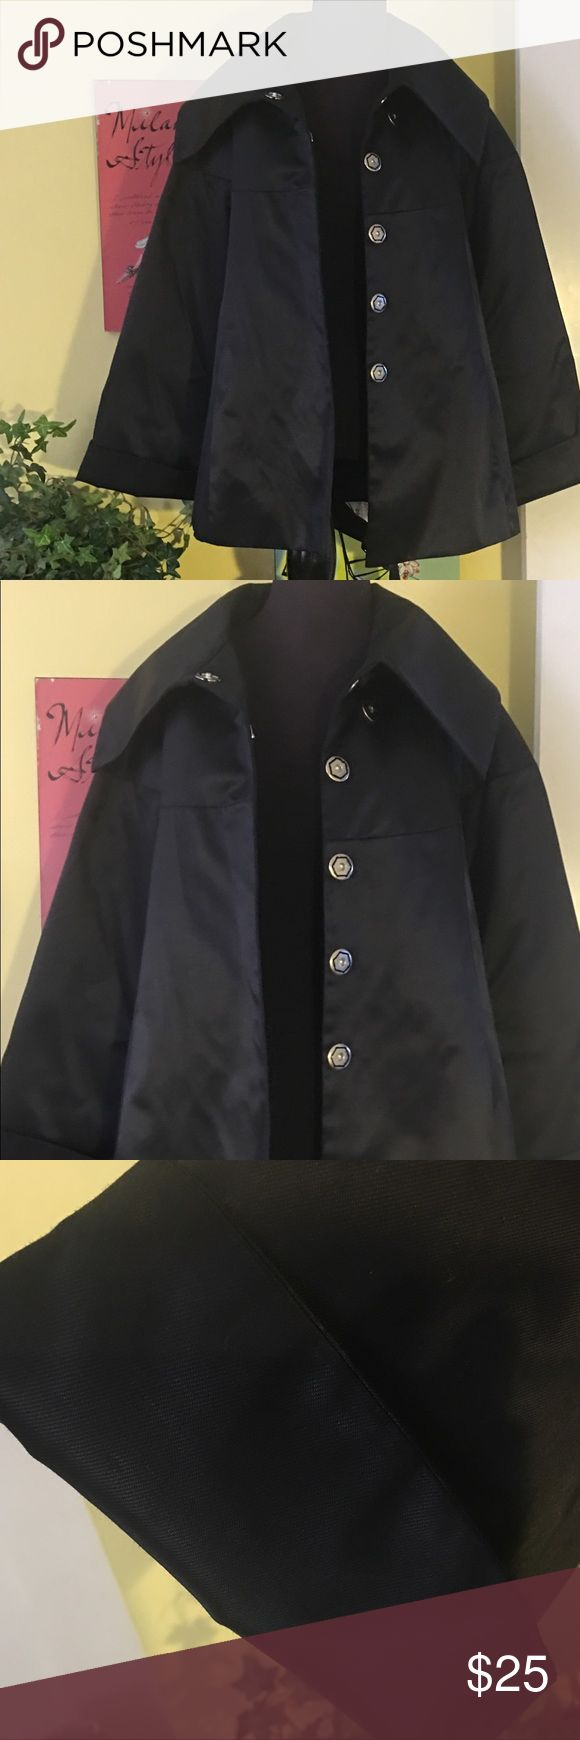 KENARD Black fabric jacket with large collar, cuffed sleeves and belt.  Can be worn with the casual outfit or a night on the town with that perfect outfit.  The look of a Short Trench or opera jacket. KENARD Jackets & Coats Trench Coats